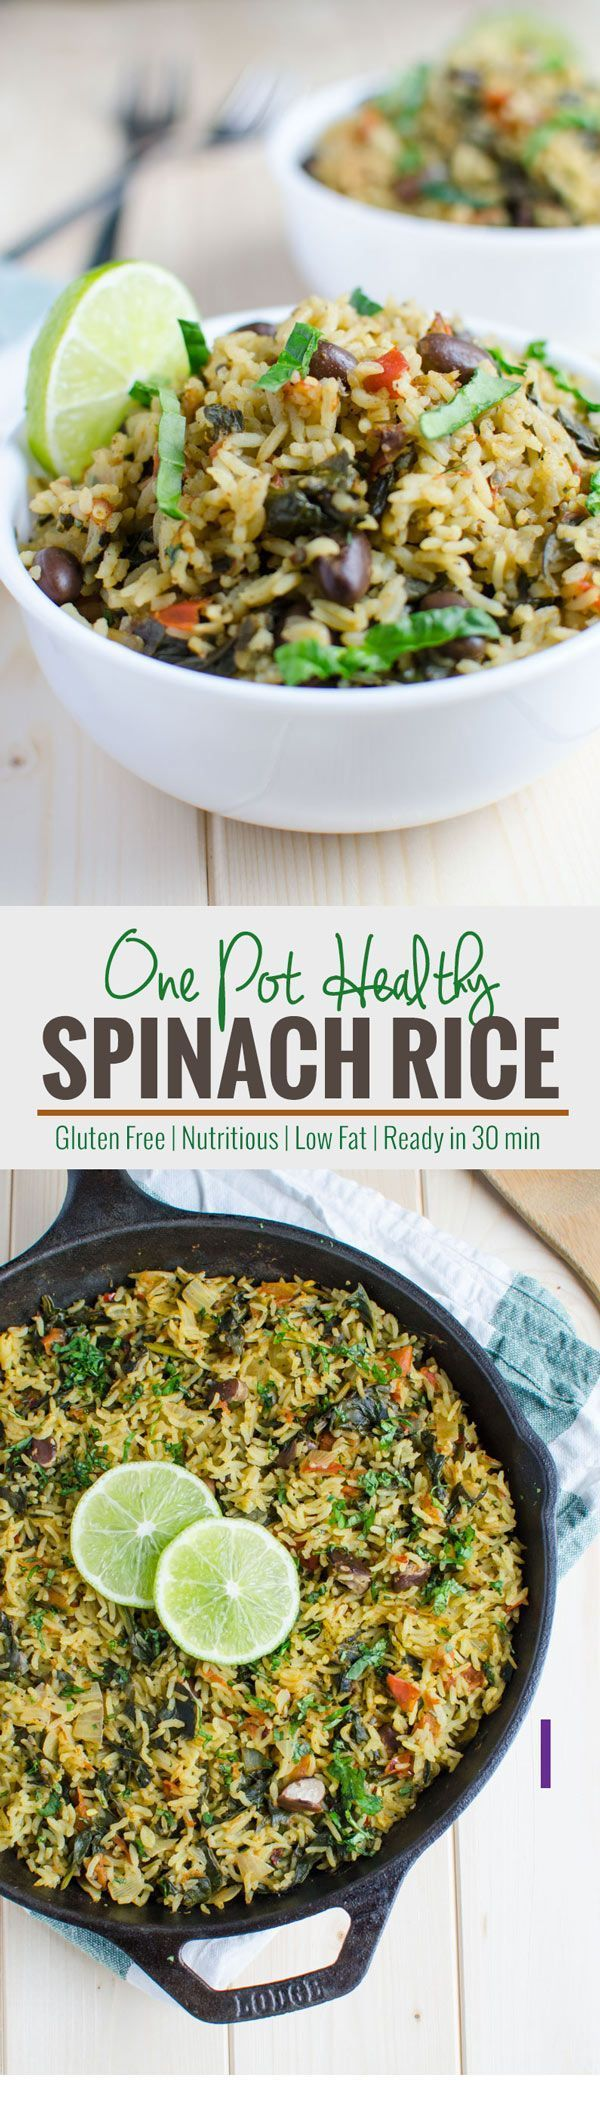 Filled with greens, beans and carbohydrates all-in-one pot spinach rice recipe. It is healthy and full of proteins, fibers, and vitamins.